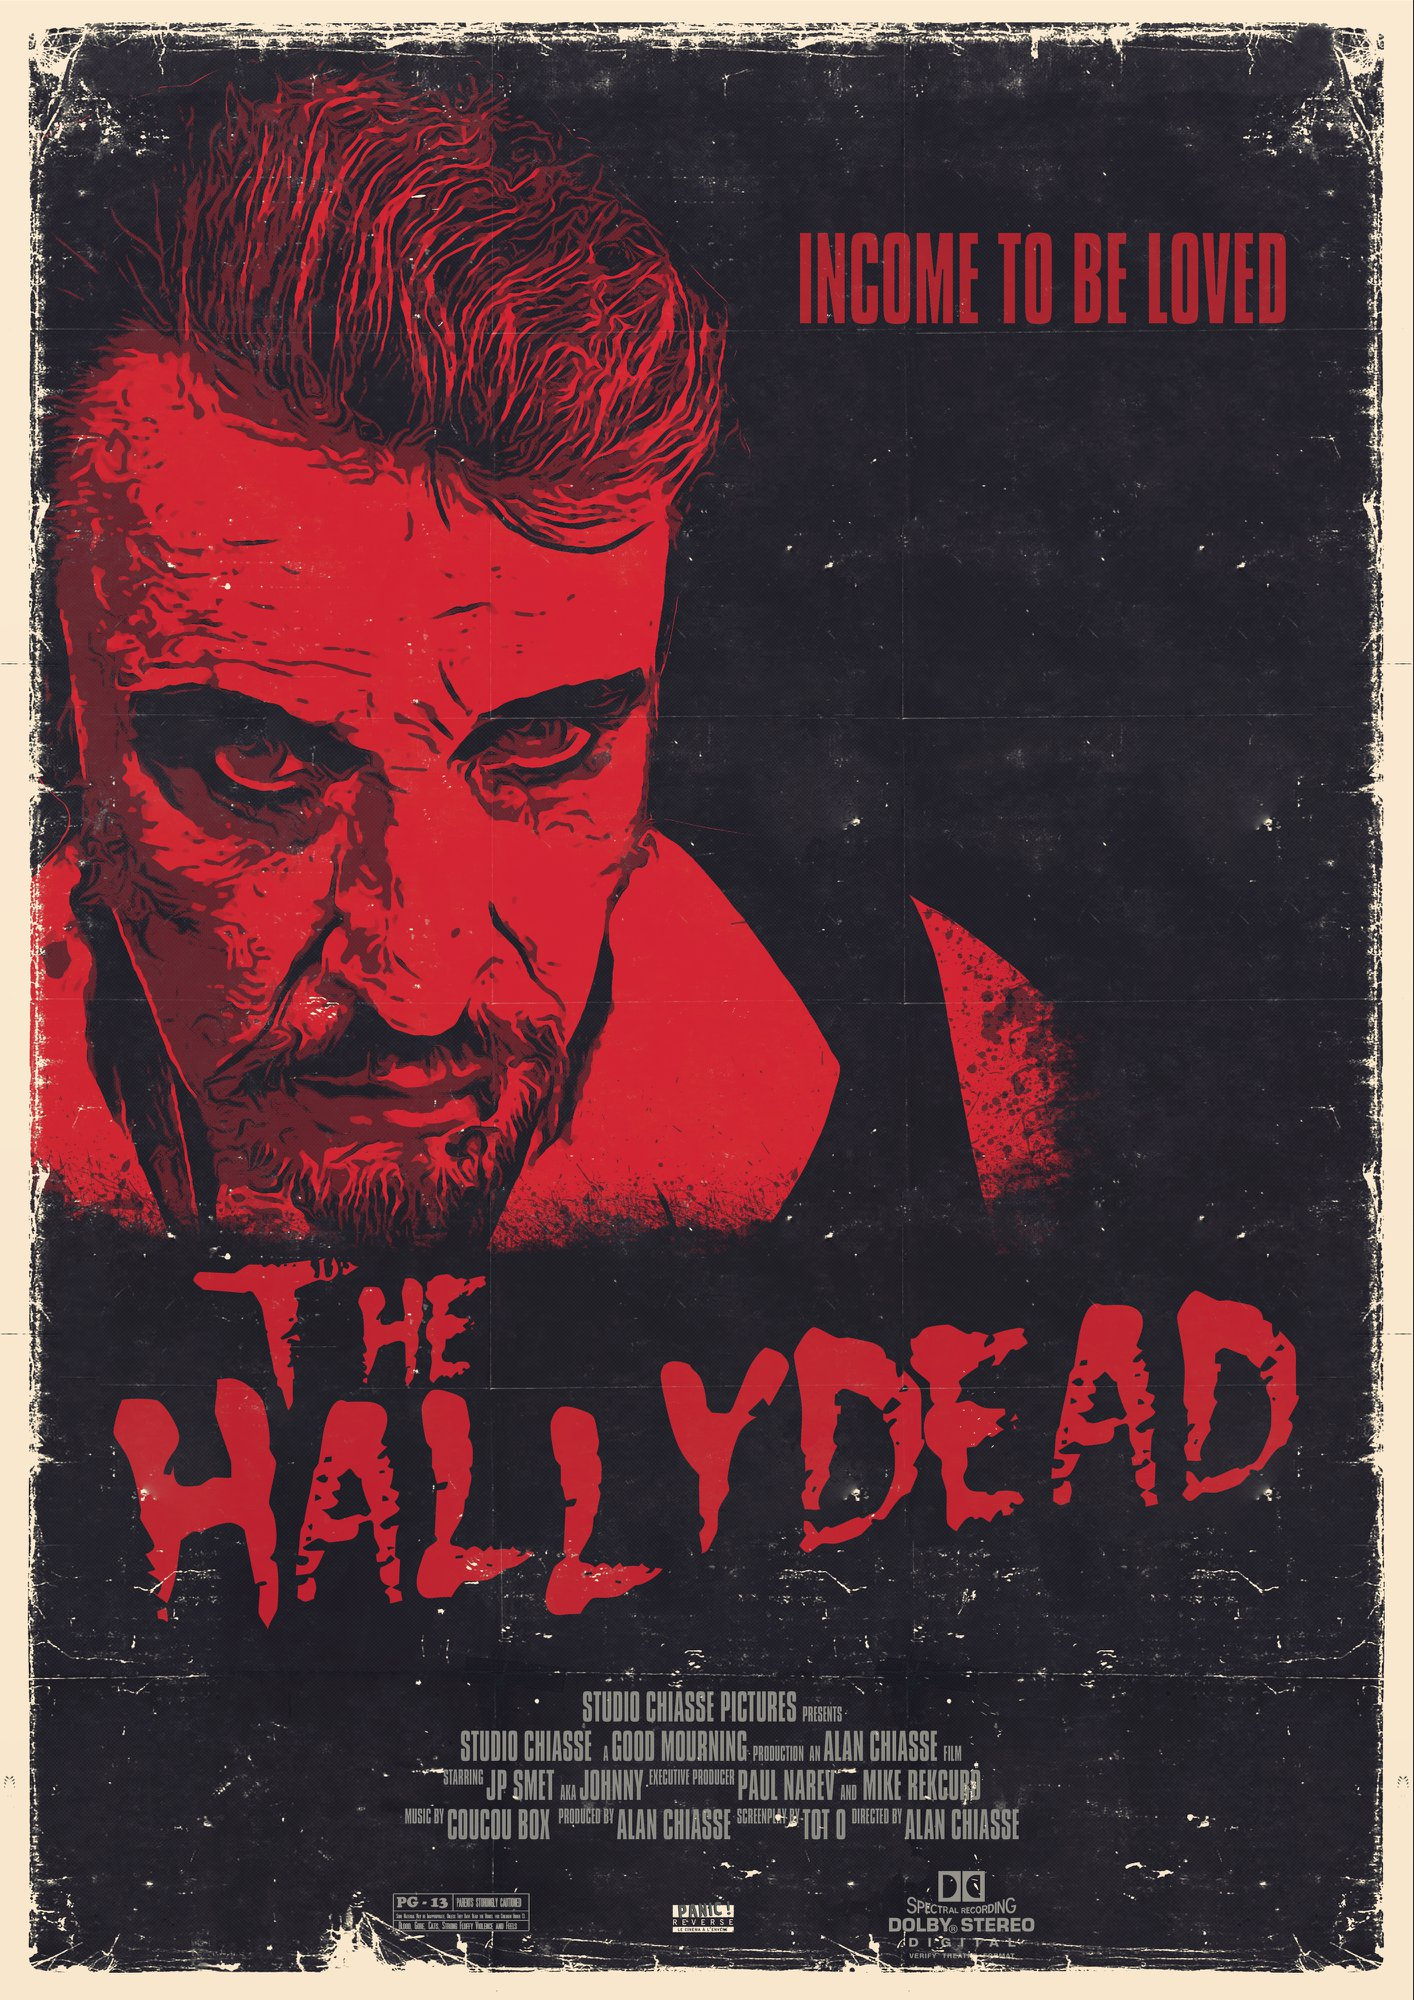 The Hallydead - Alban Gily